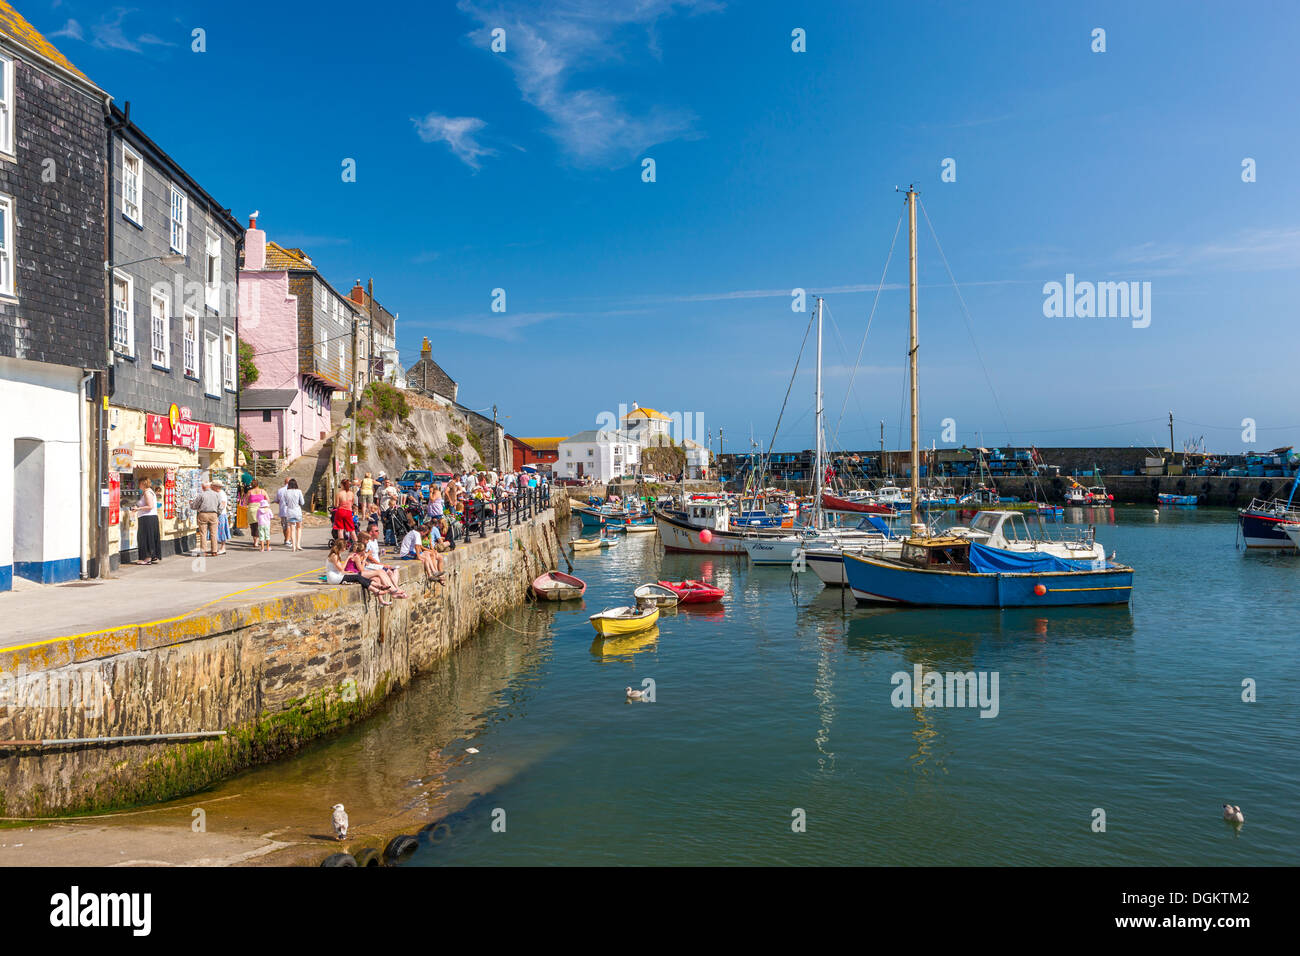 Old wooden fishing boats in the harbour at Mevagissey. - Stock Image